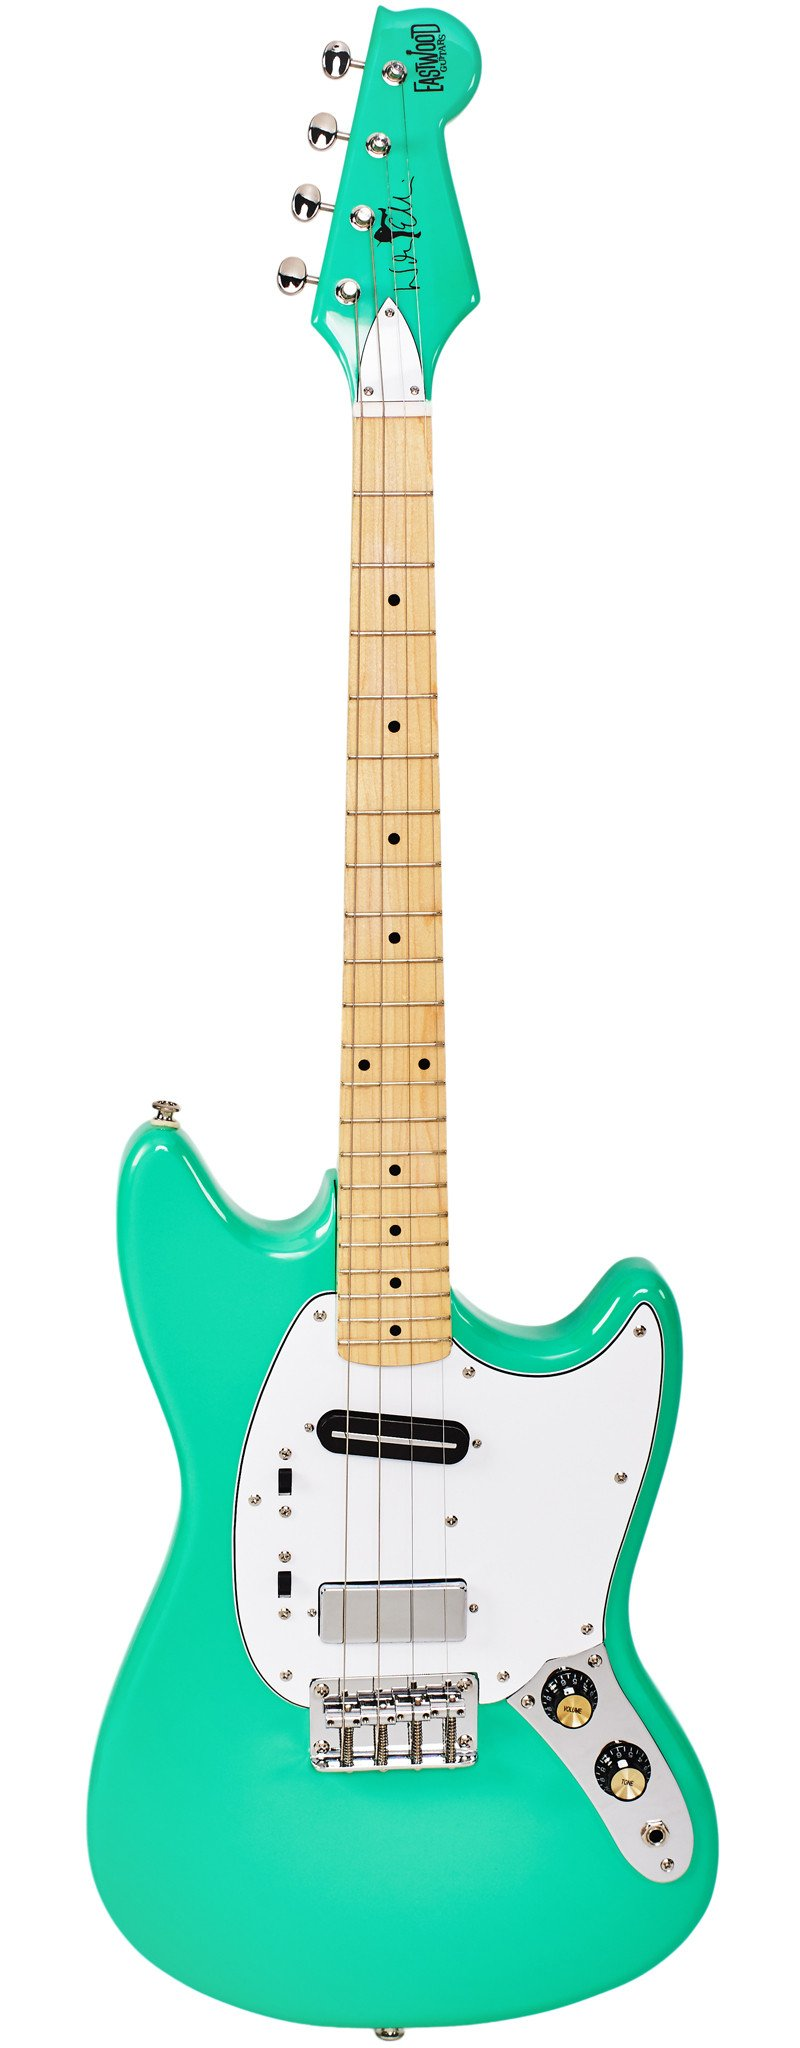 Eastwood Guitars Warren Ellis Tenor 2P Seafoam Green Full Front